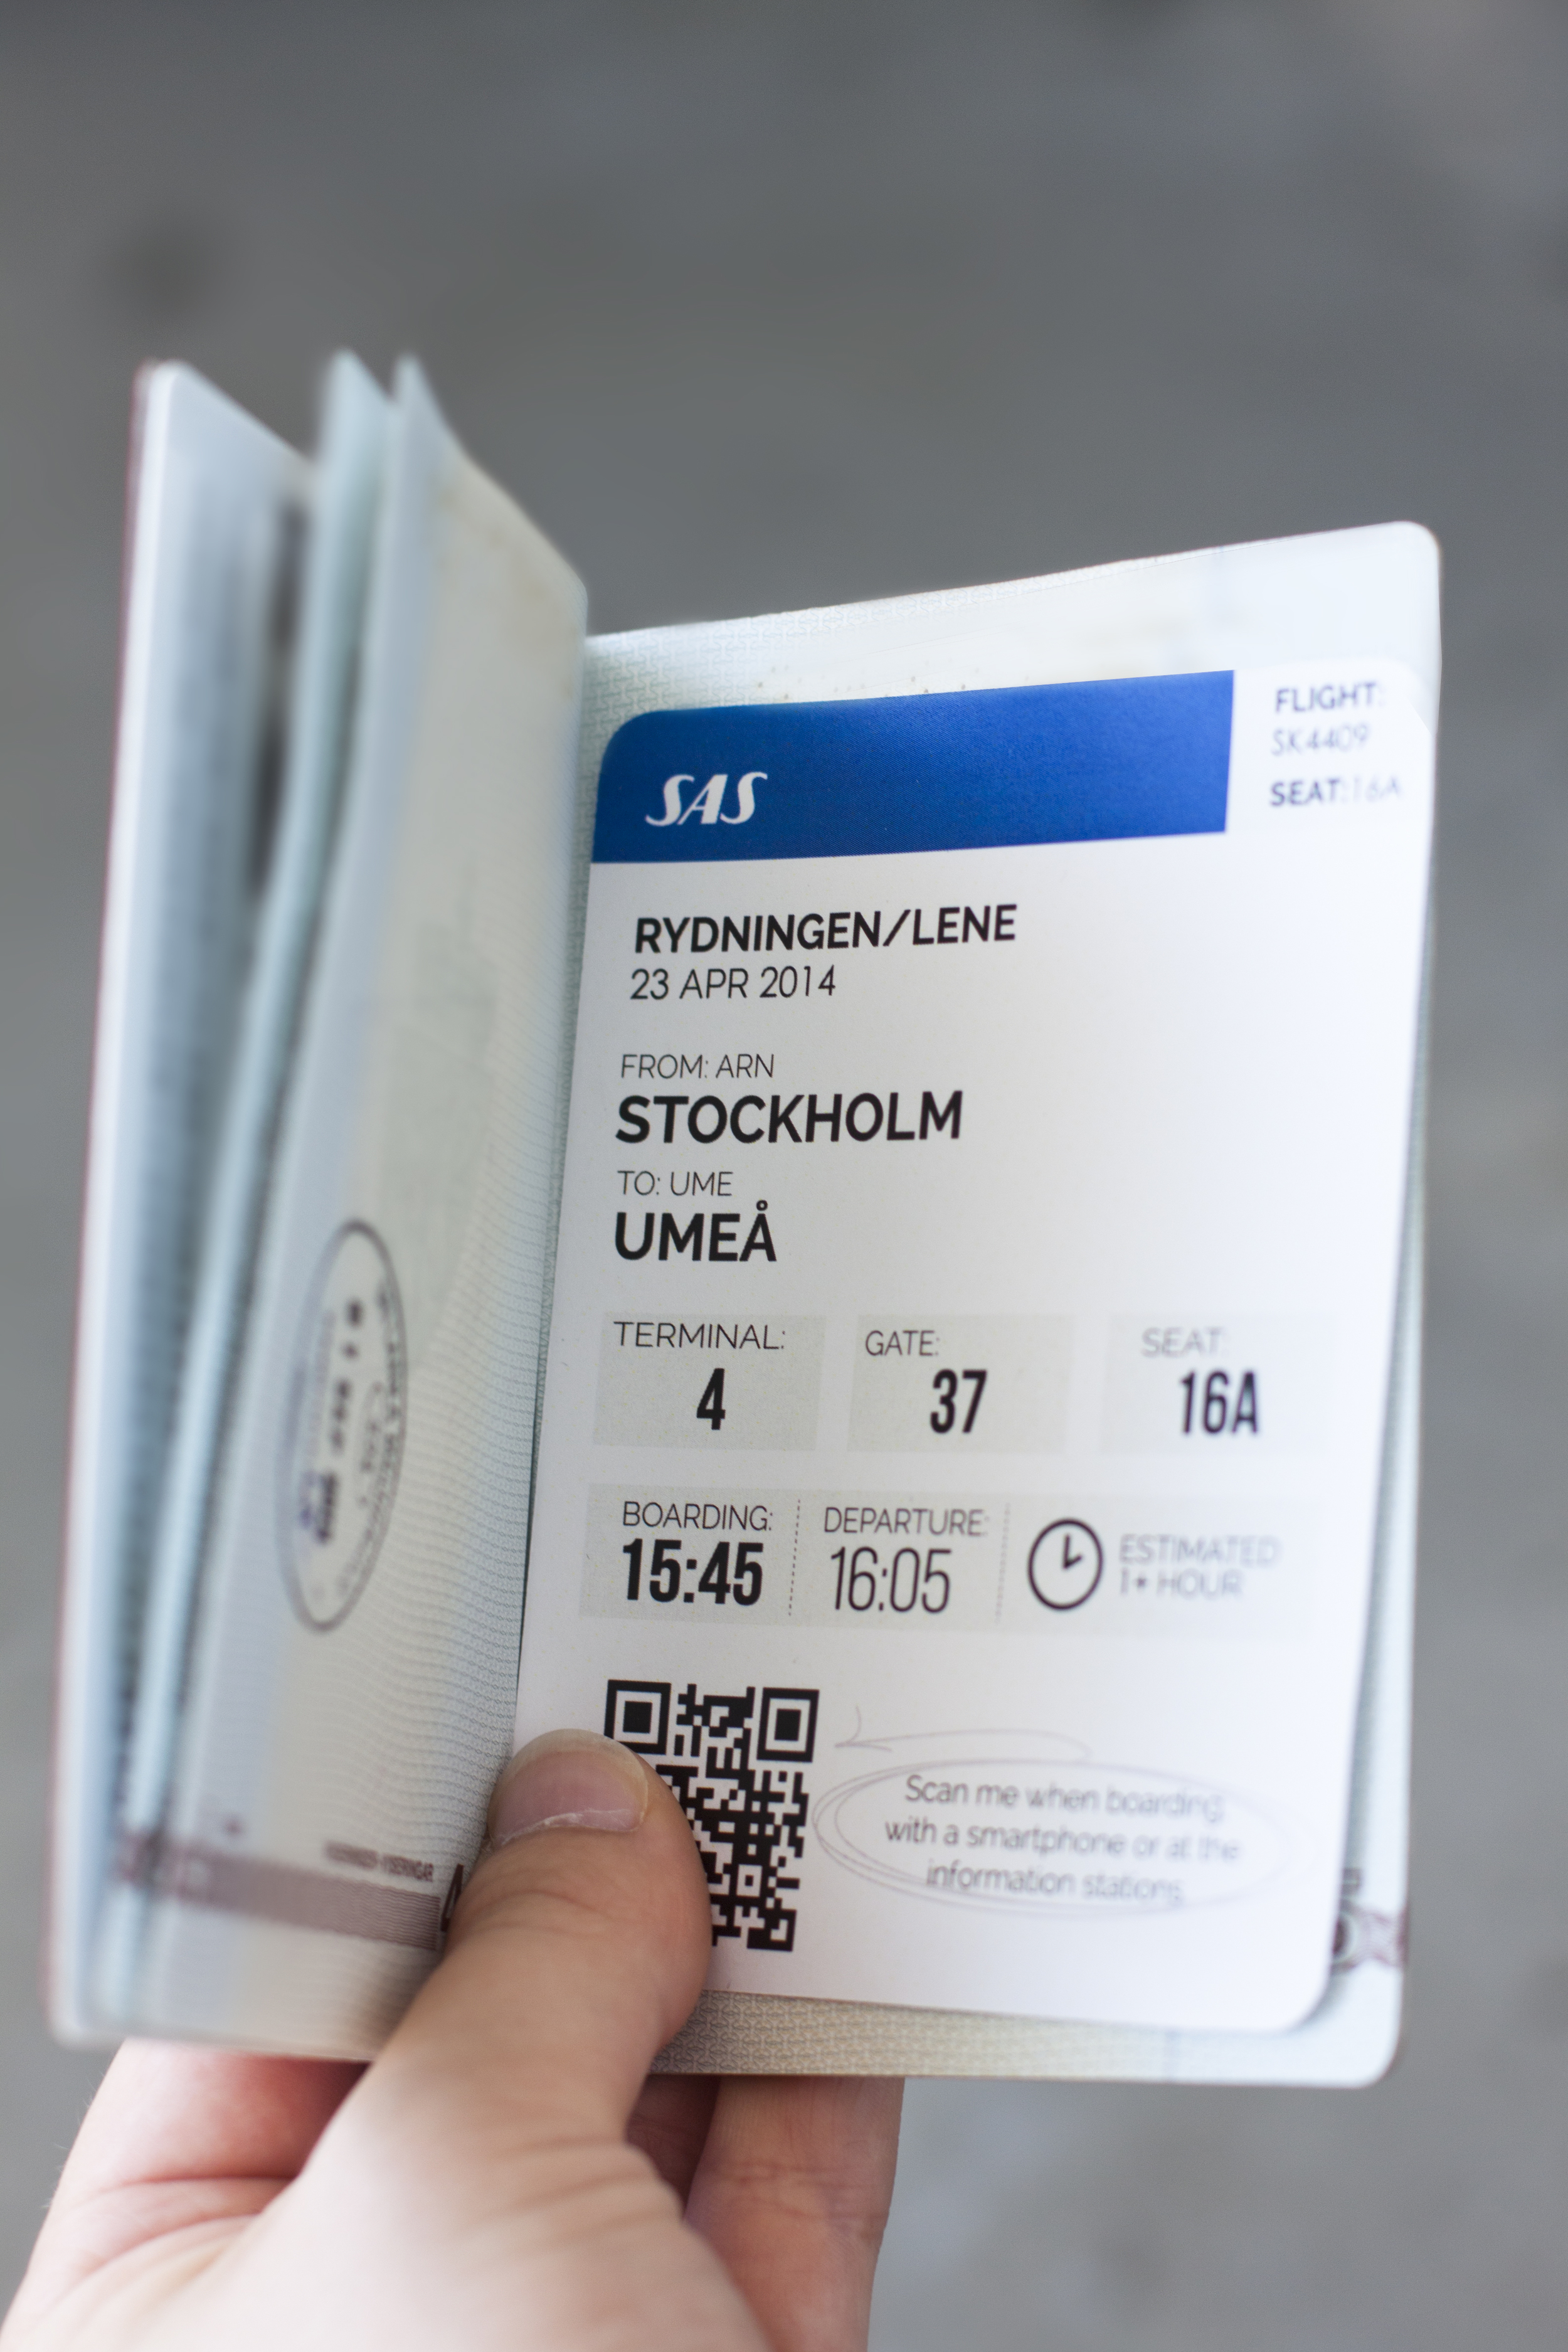 Swedavia_passport_ticket2.jpg